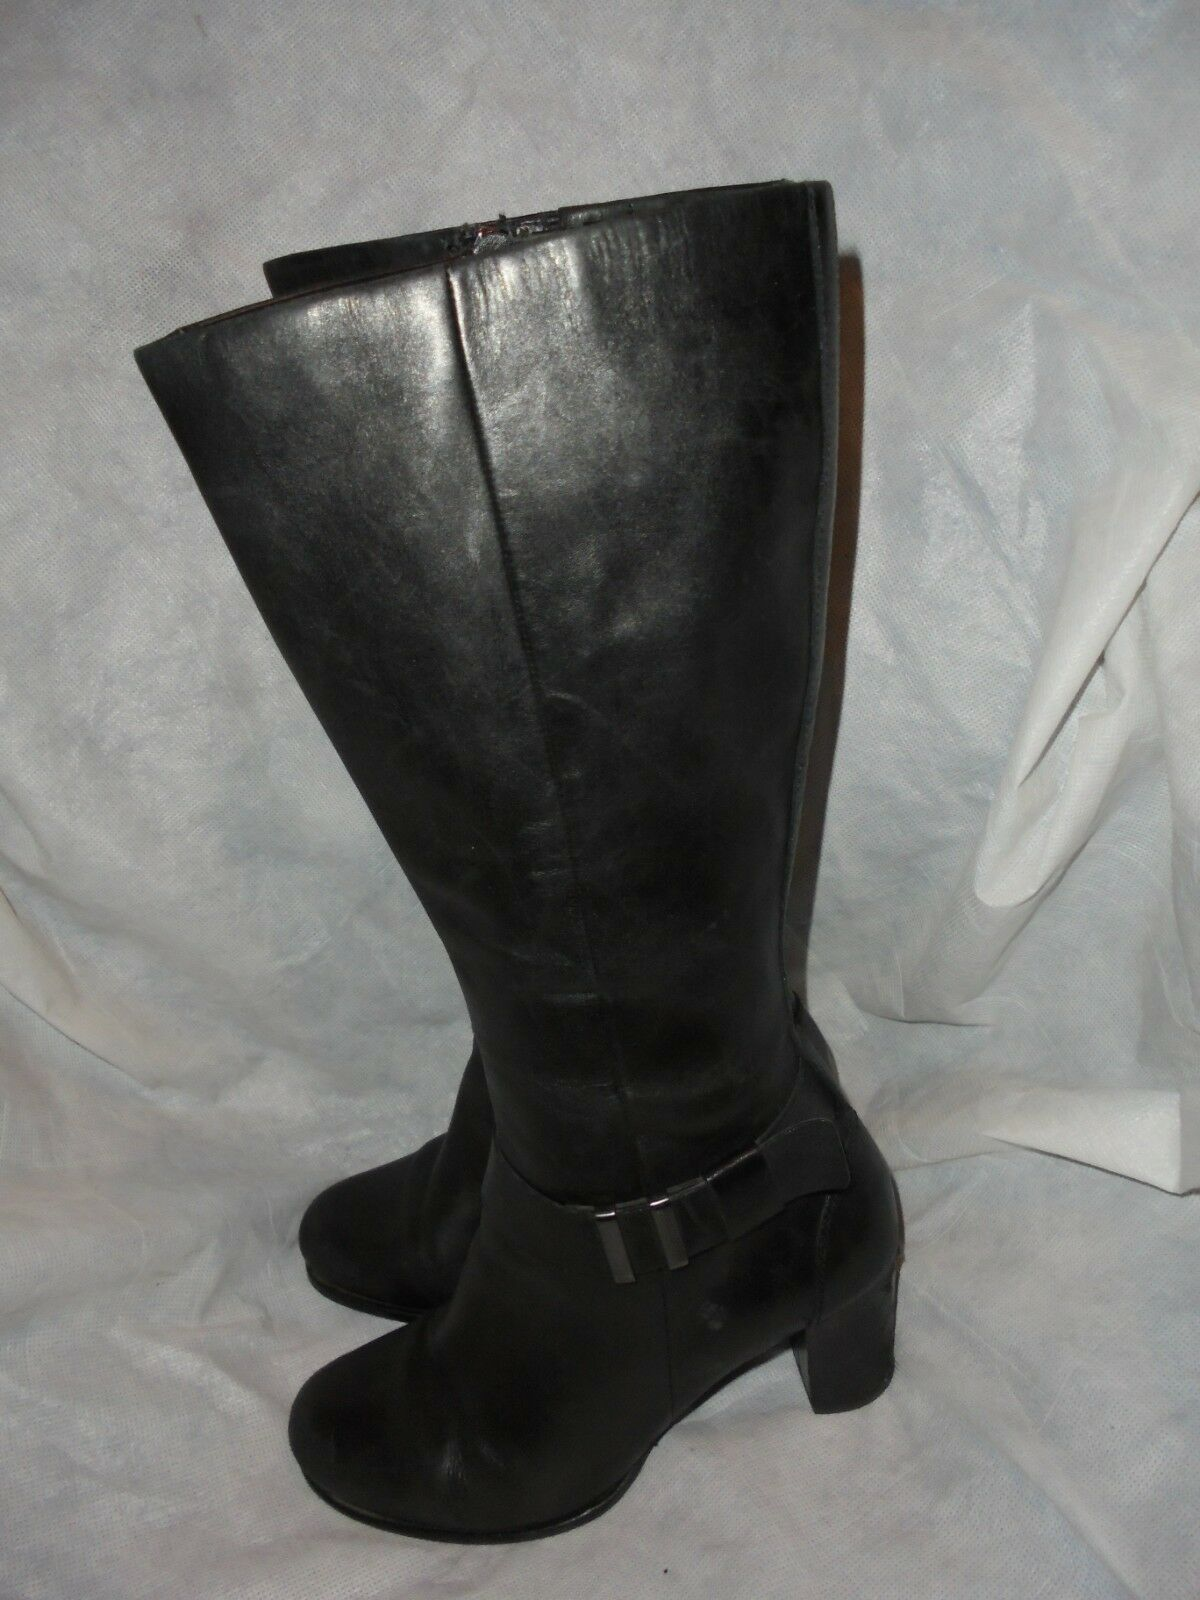 ECCO WOMEN'S BLACK LEATHER ZIP KNEE HIGH  BOOT SIZE UK 5 EU 38 VGC